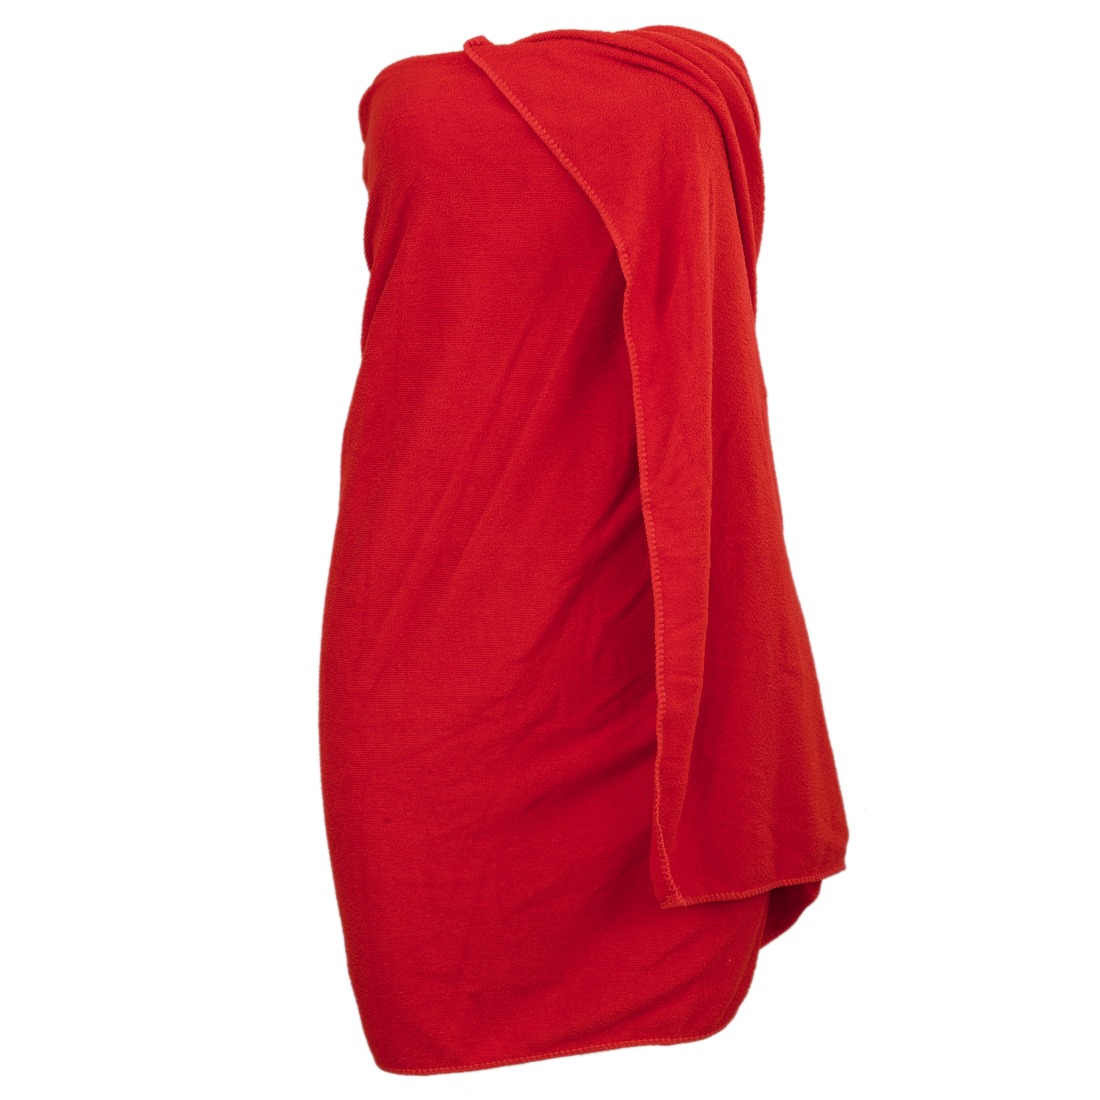 Red Microfiber Bath Towels: Microfiber Beach Bath Towels Travel Dry Towels Red-in Bath